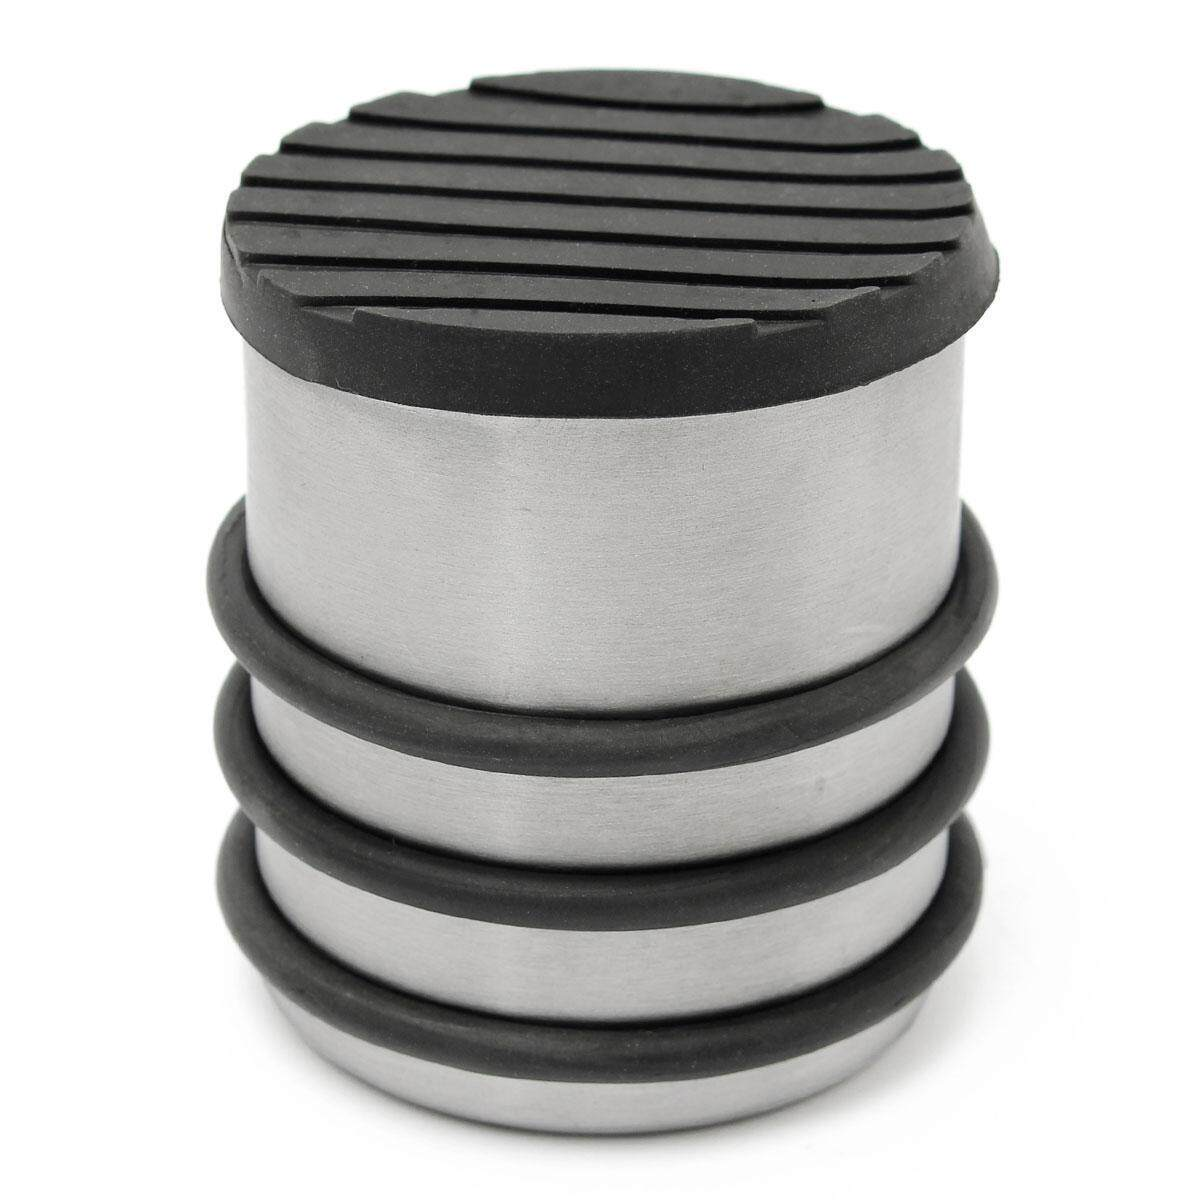 Heavy Weight Door Stop Round Heavy Duty Floor Metal Stainless Steel Door Stop Stopper Protector Rubber